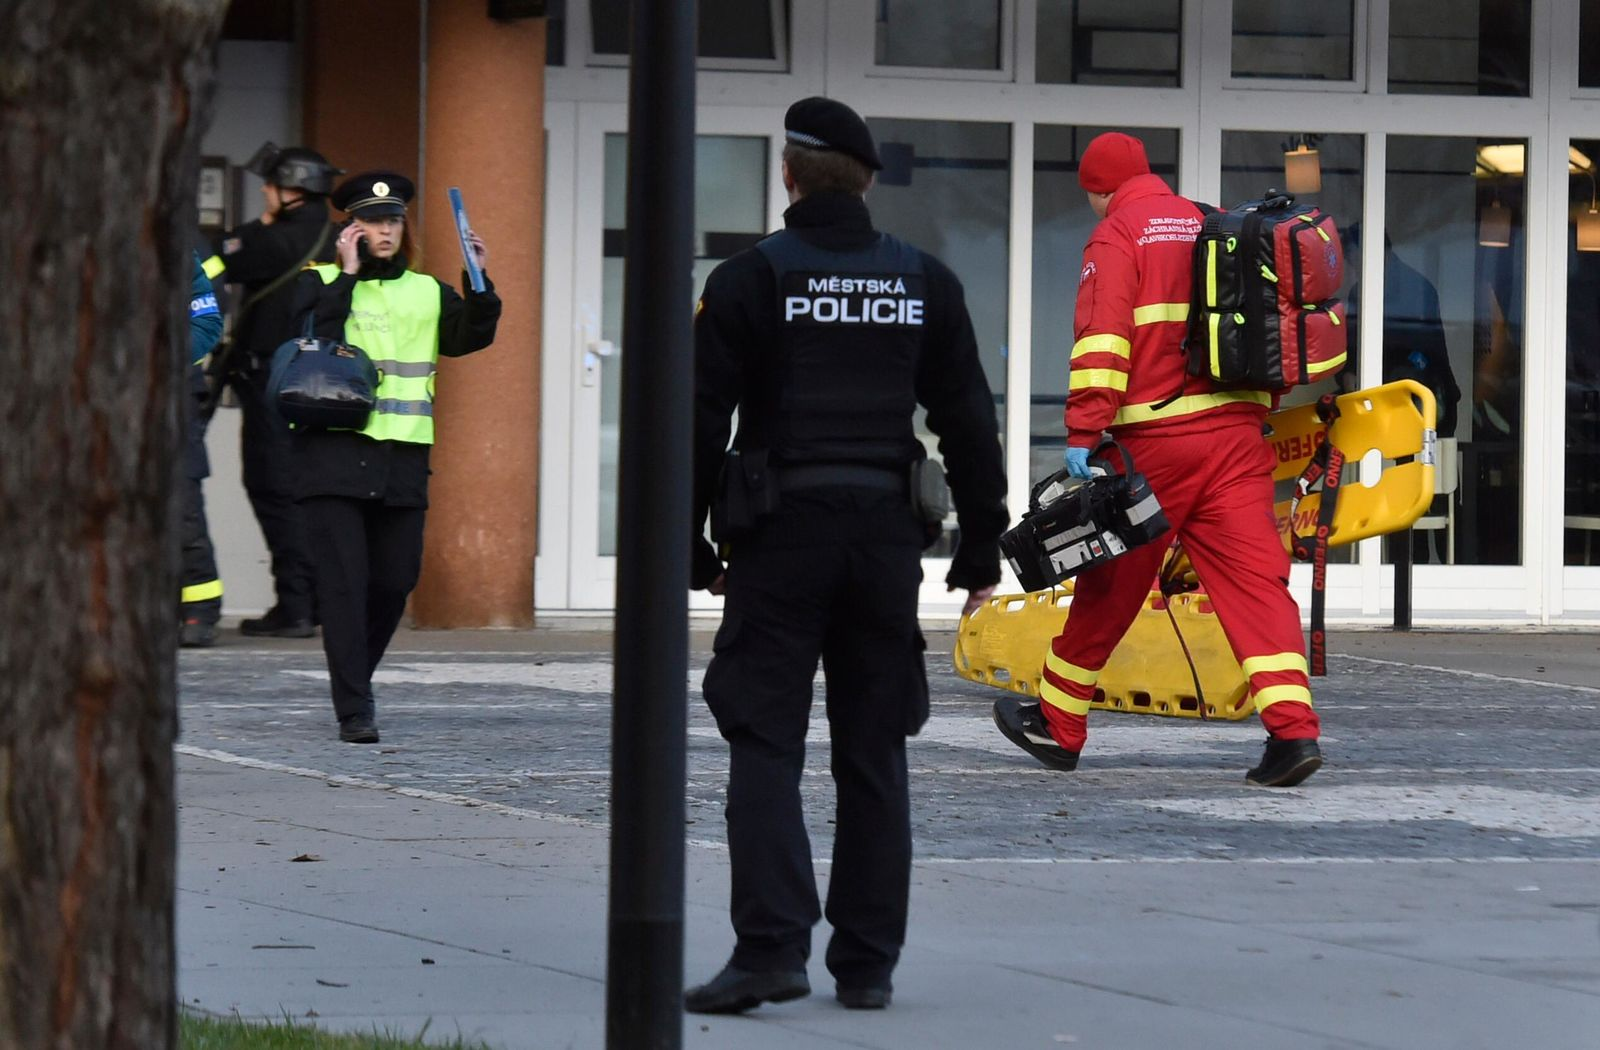 Police personnel and paramedics outside the Ostrava Teaching Hospital after a shooting incident in Ostava, Czech Republic, Tuesday, Dec. 10, 2019.{ } (Jaroslav Ozana/CTK via AP)